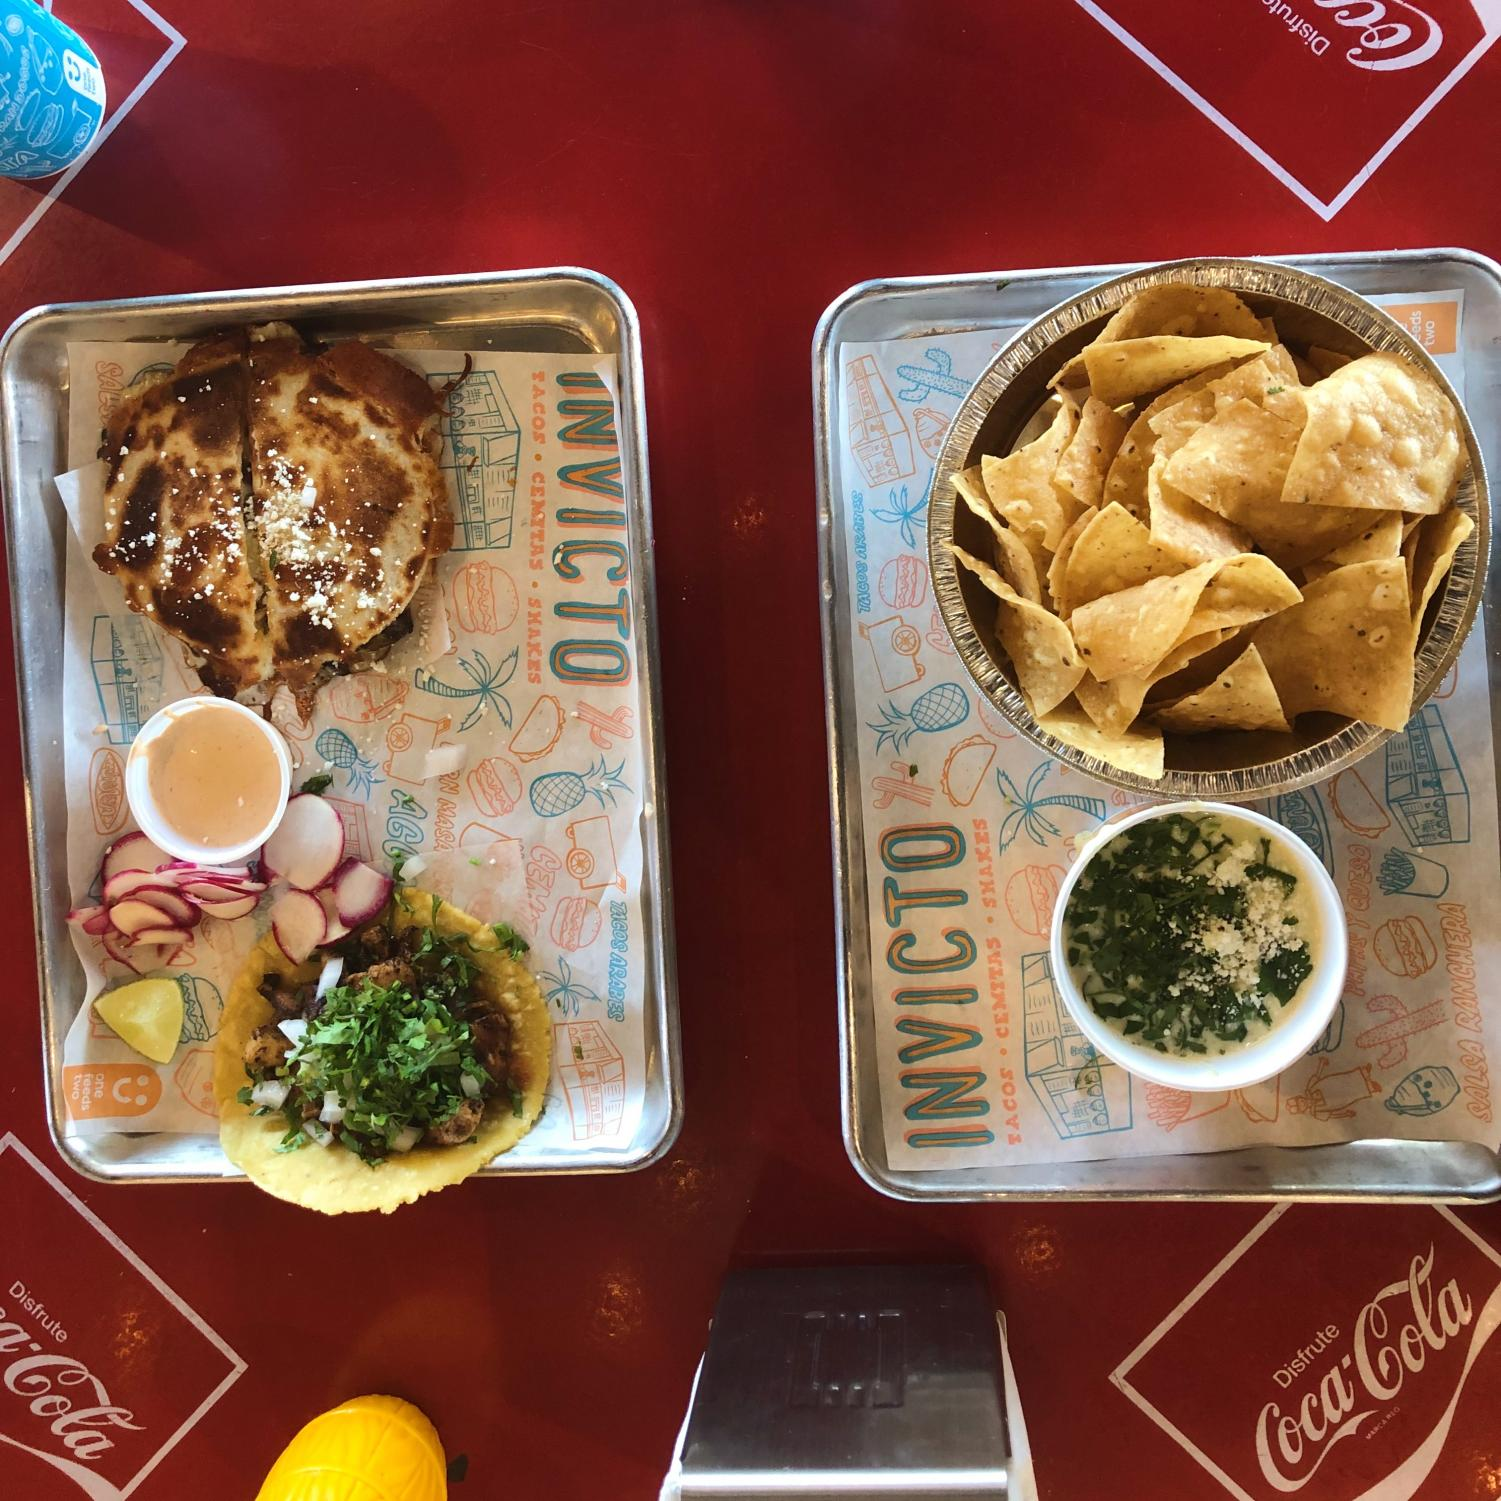 On+left+there+is+the+chicken+taco+and+the+chicken+quesadilla.+On+the+right+is+the+chips+and+queso.++